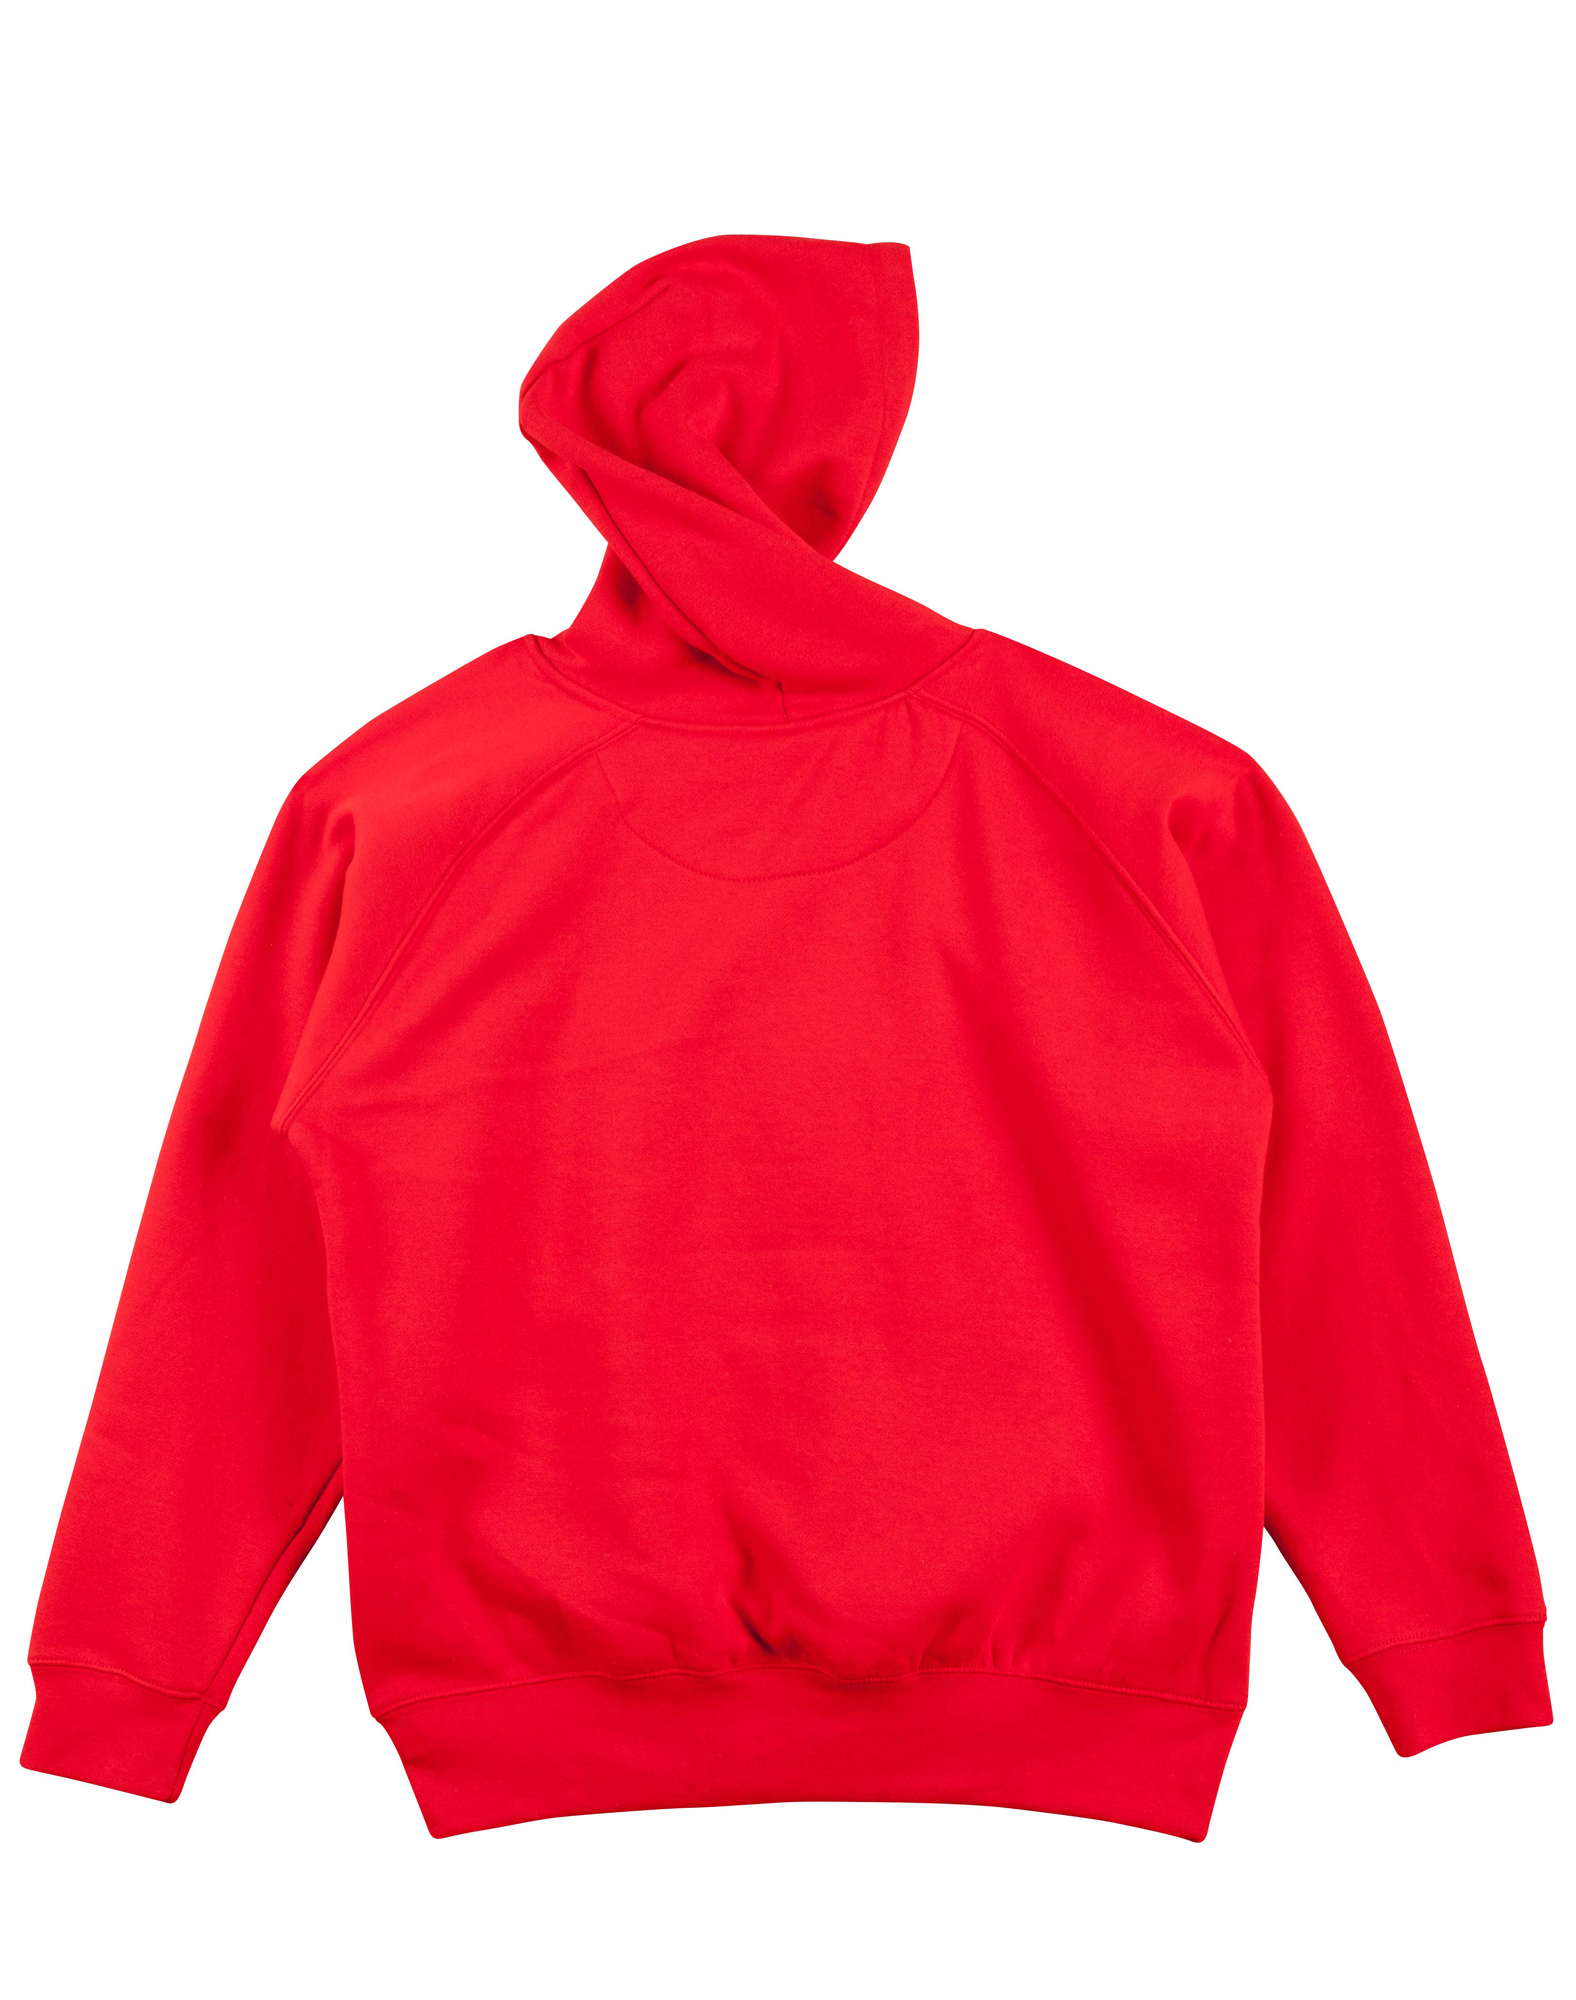 https://s3-ap-southeast-1.amazonaws.com/ws-imgs/OUTWEAR/FL07K_Red_Back_l.jpg